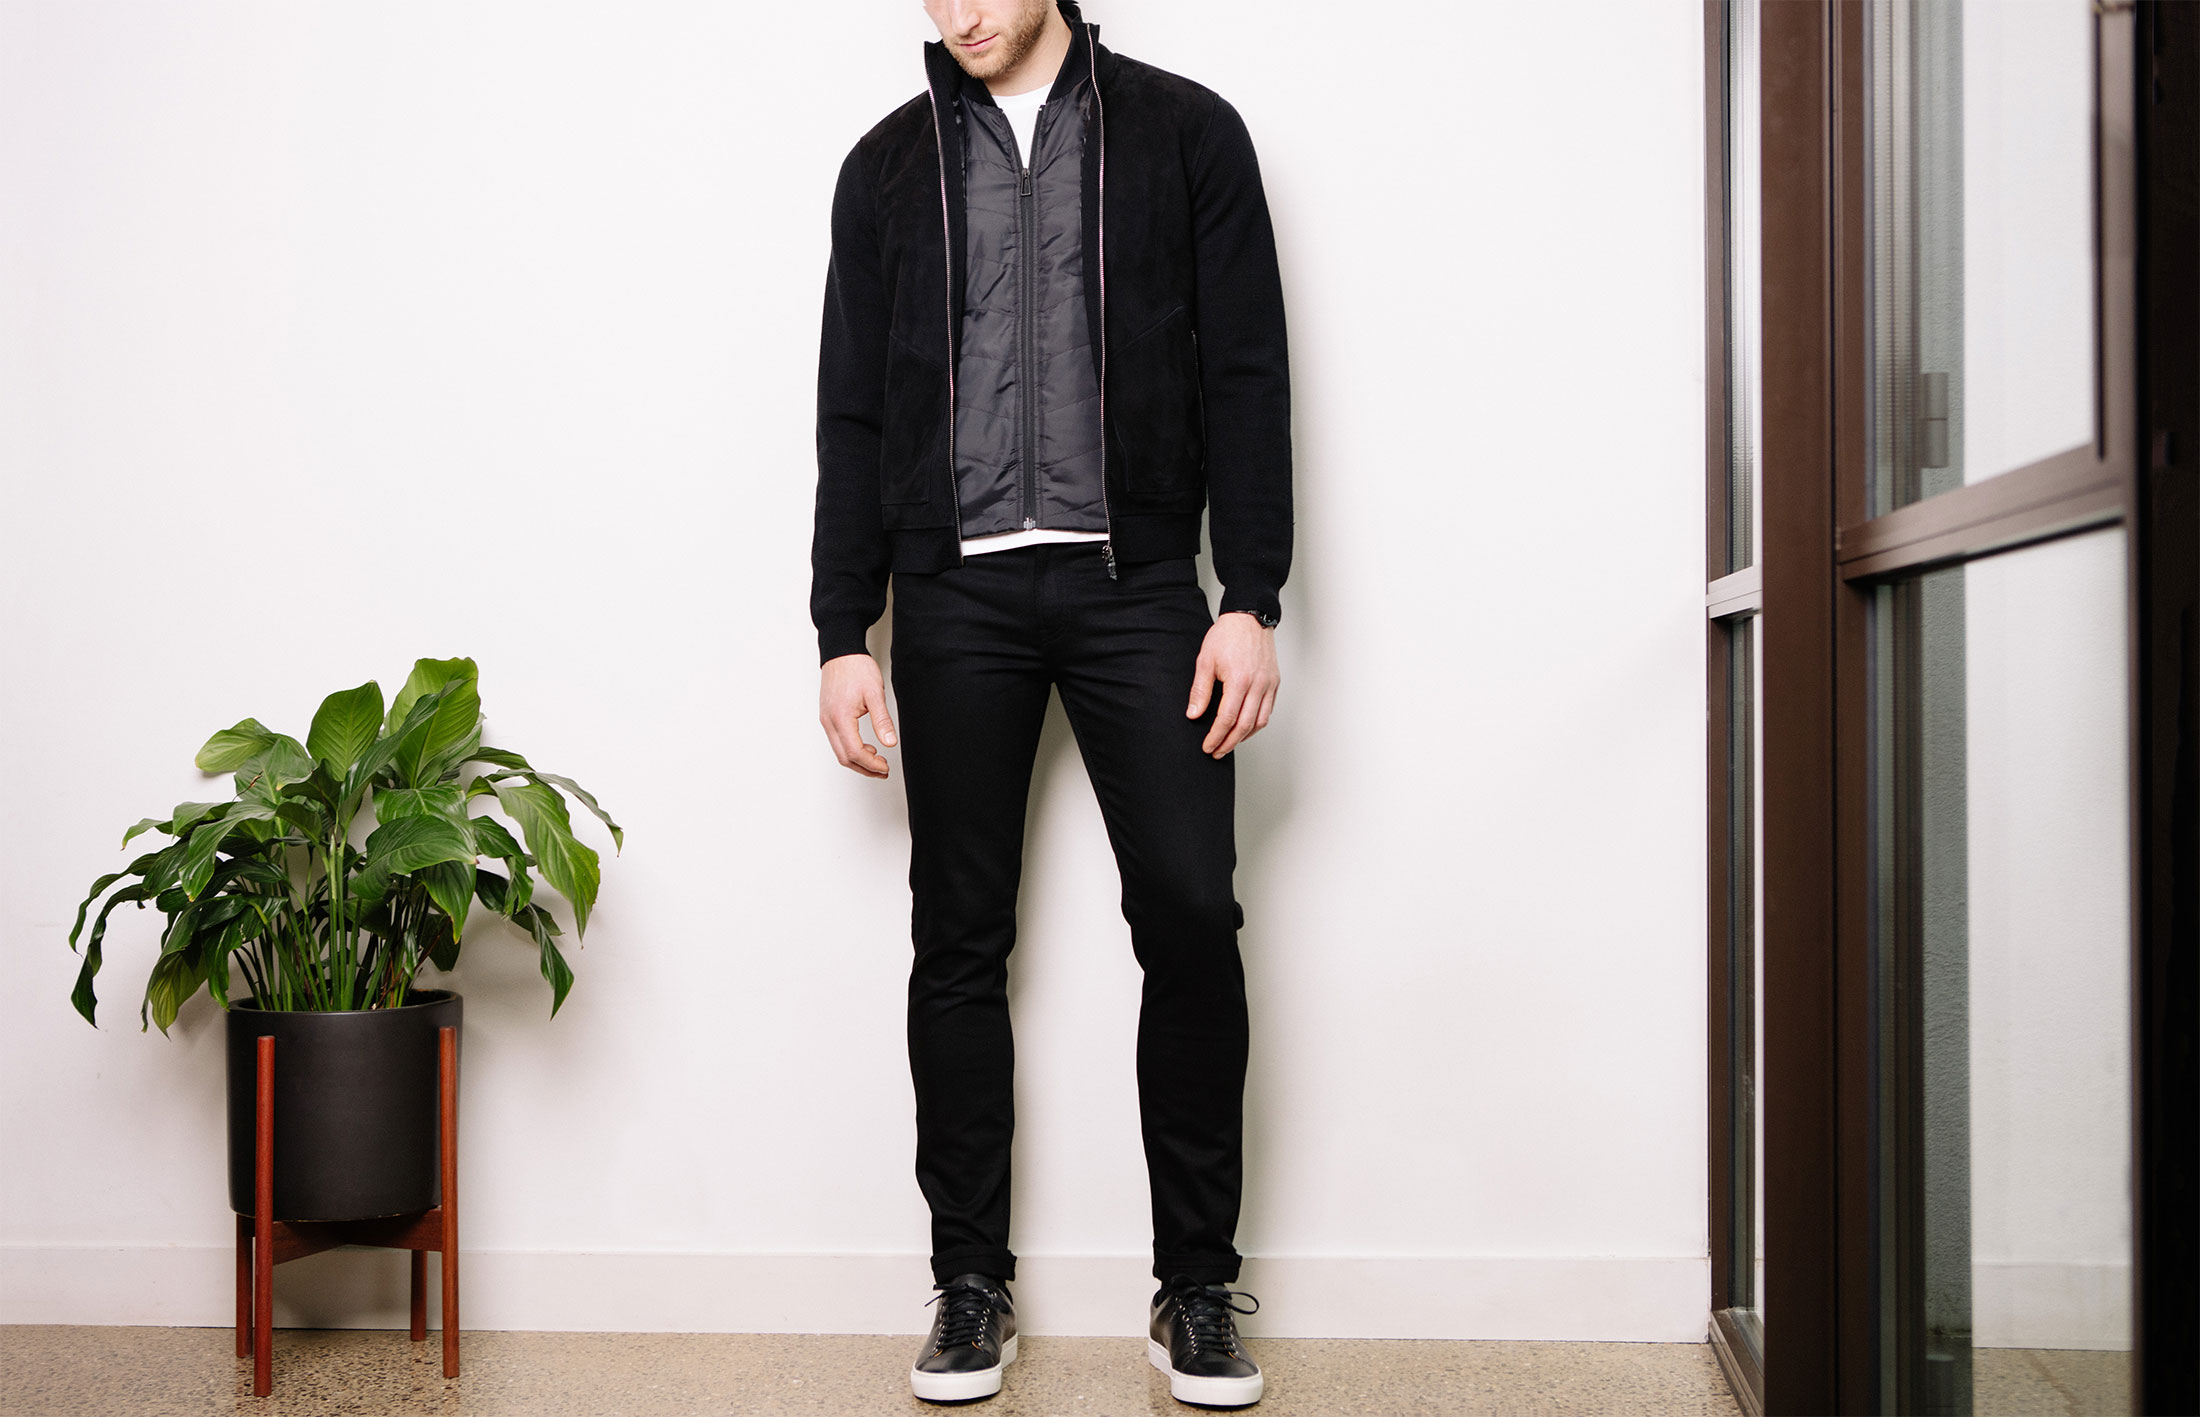 How to wear all-black without looking boring